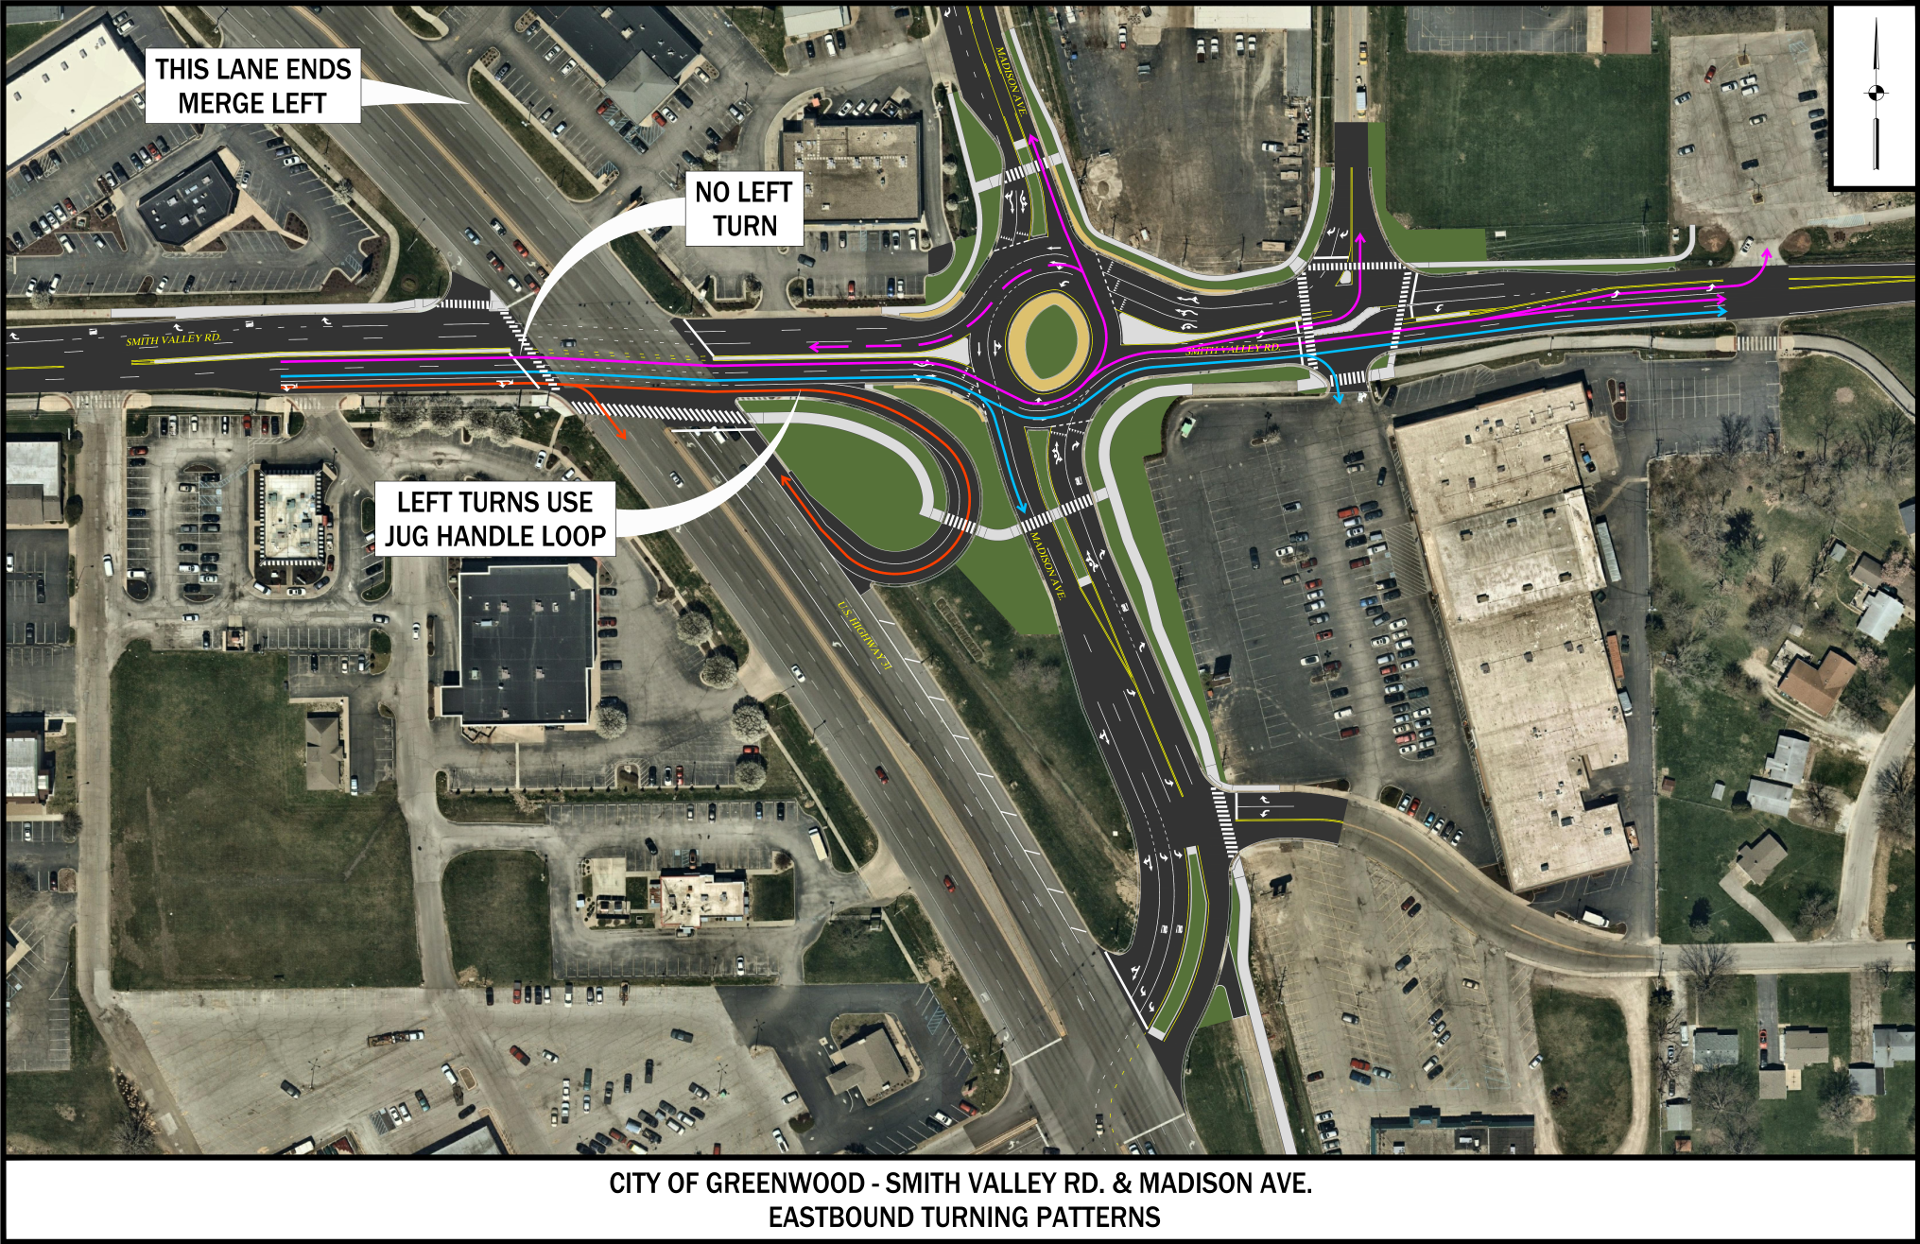 Madison/Smith Valley Roundabout - Eastbound Traffic